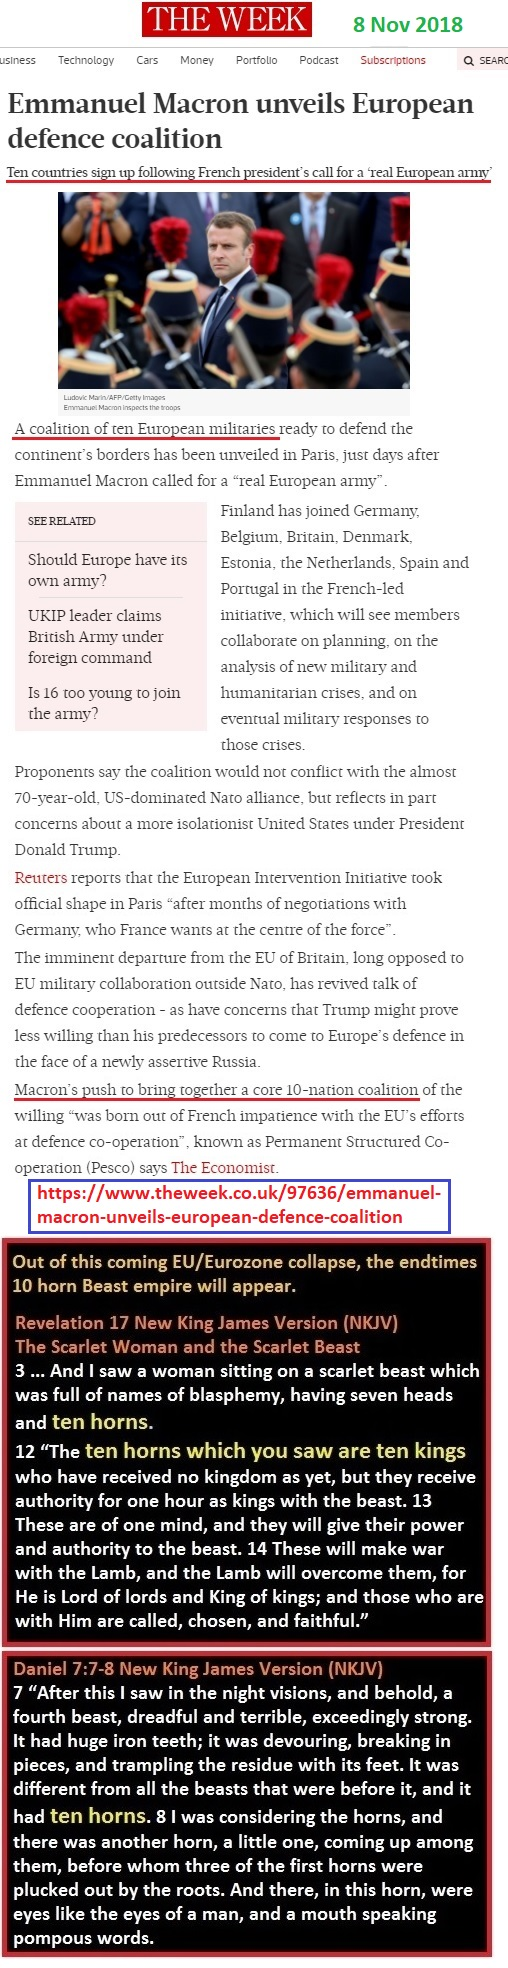 https://www.theweek.co.uk/97636/emmanuel-macron-unveils-european-defence-coalition